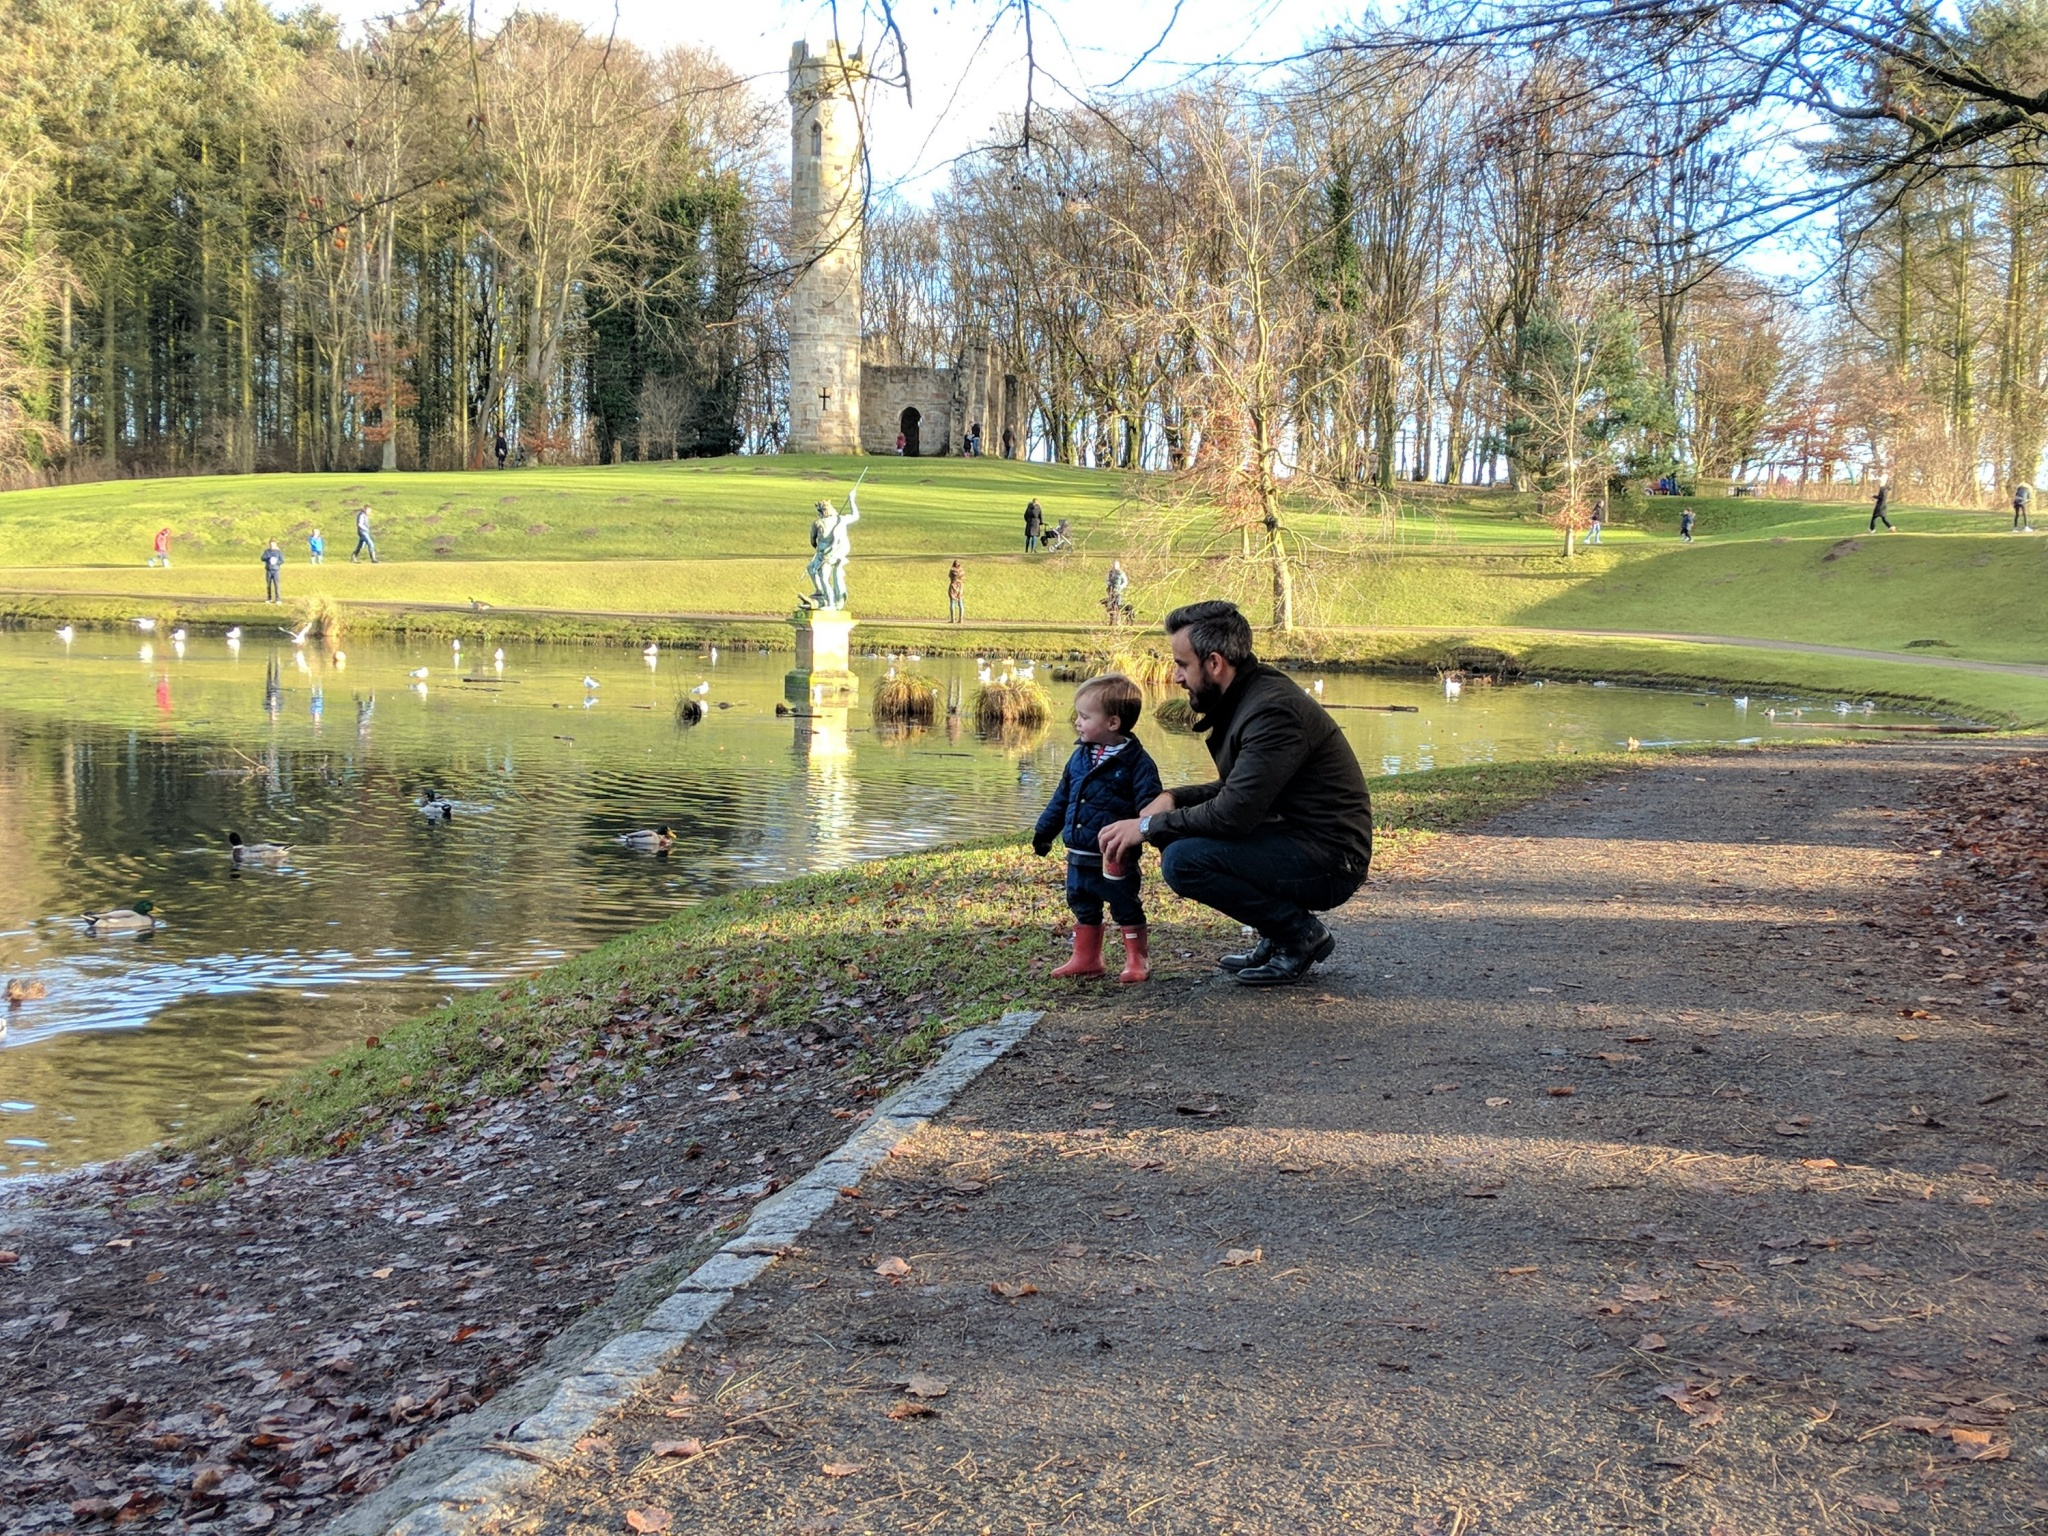 baby and dad looking in lake at hardwick park sedgefield